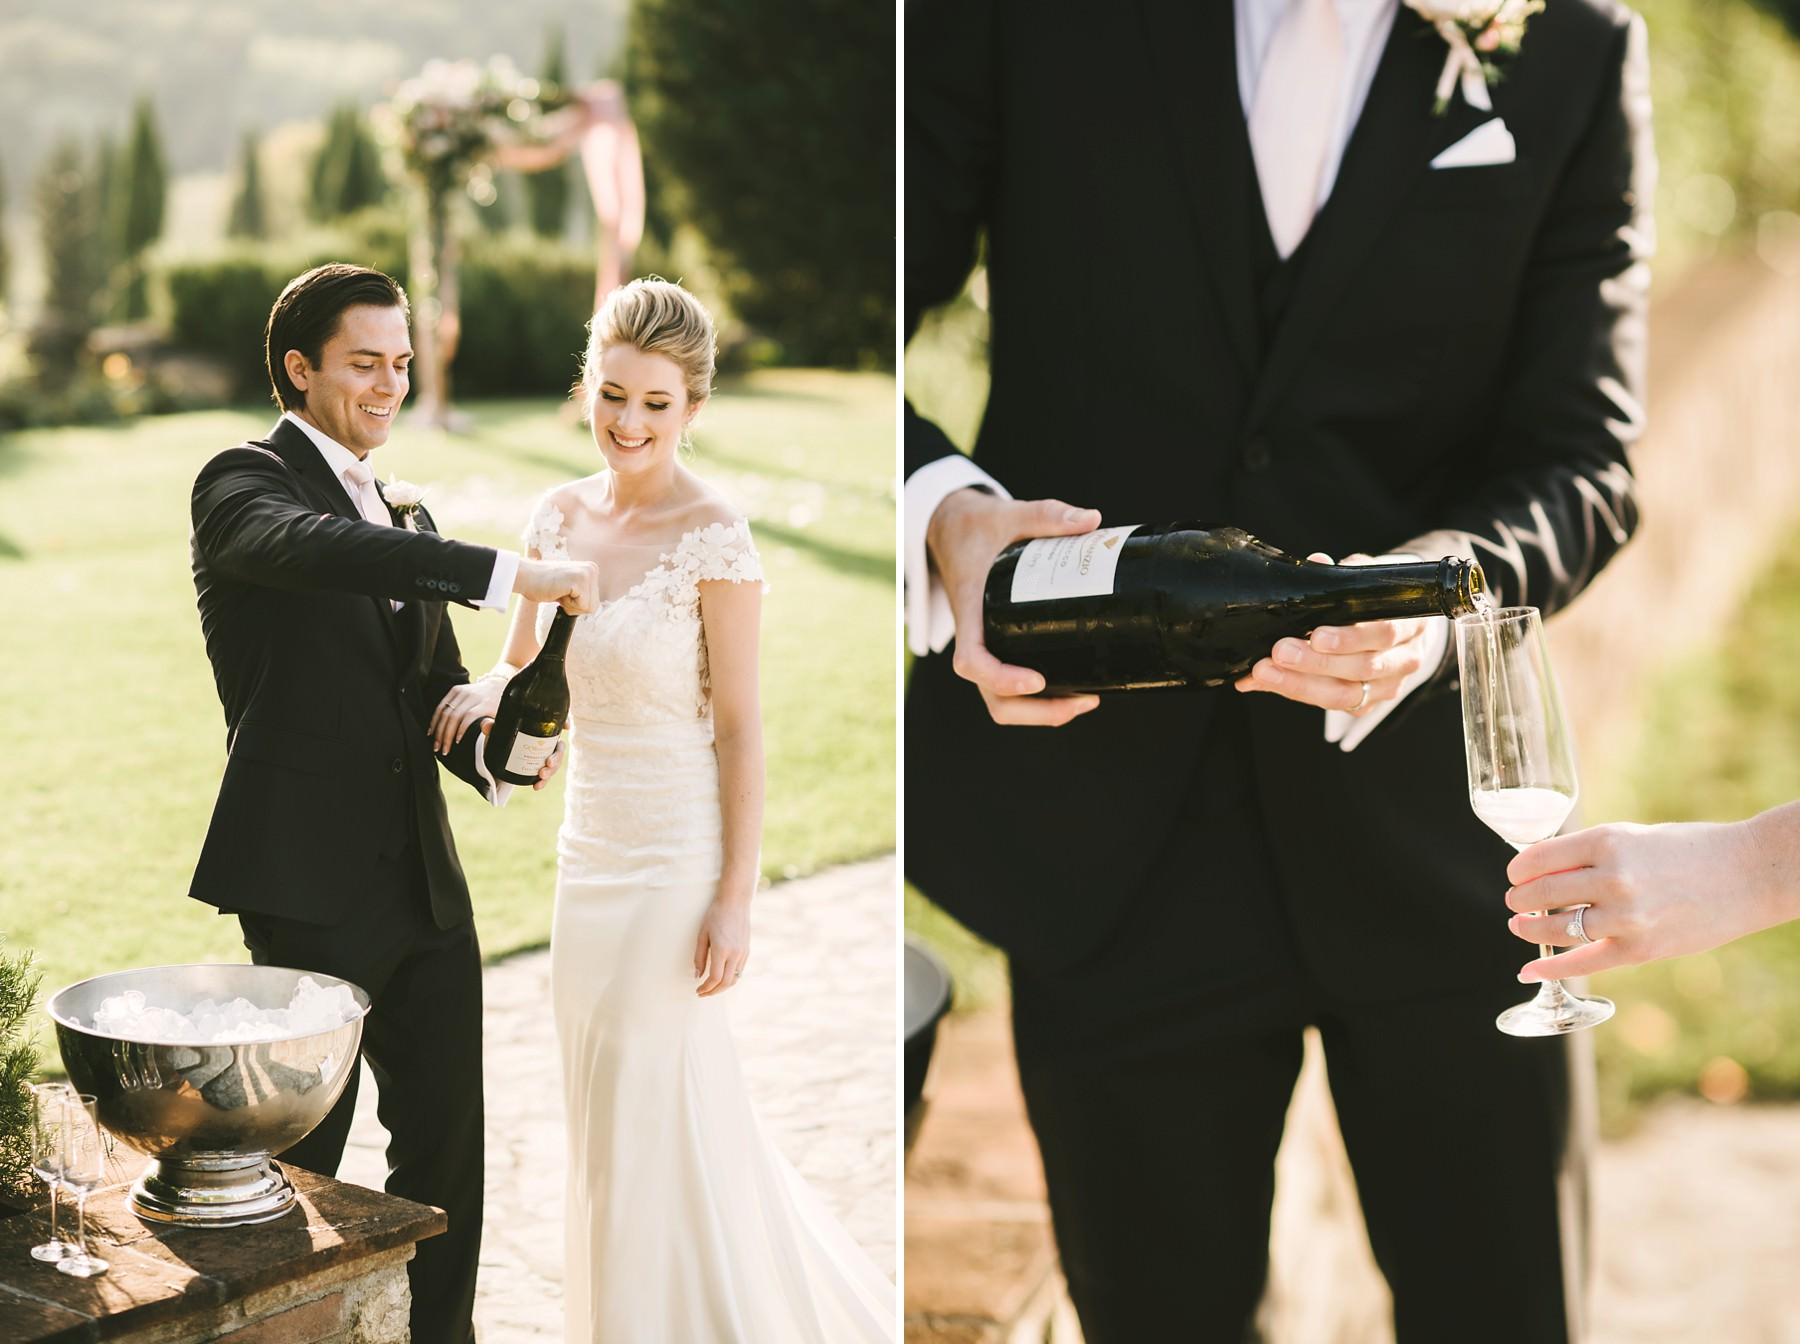 Just married! Celebrate the love with a bottle of good champagne wine